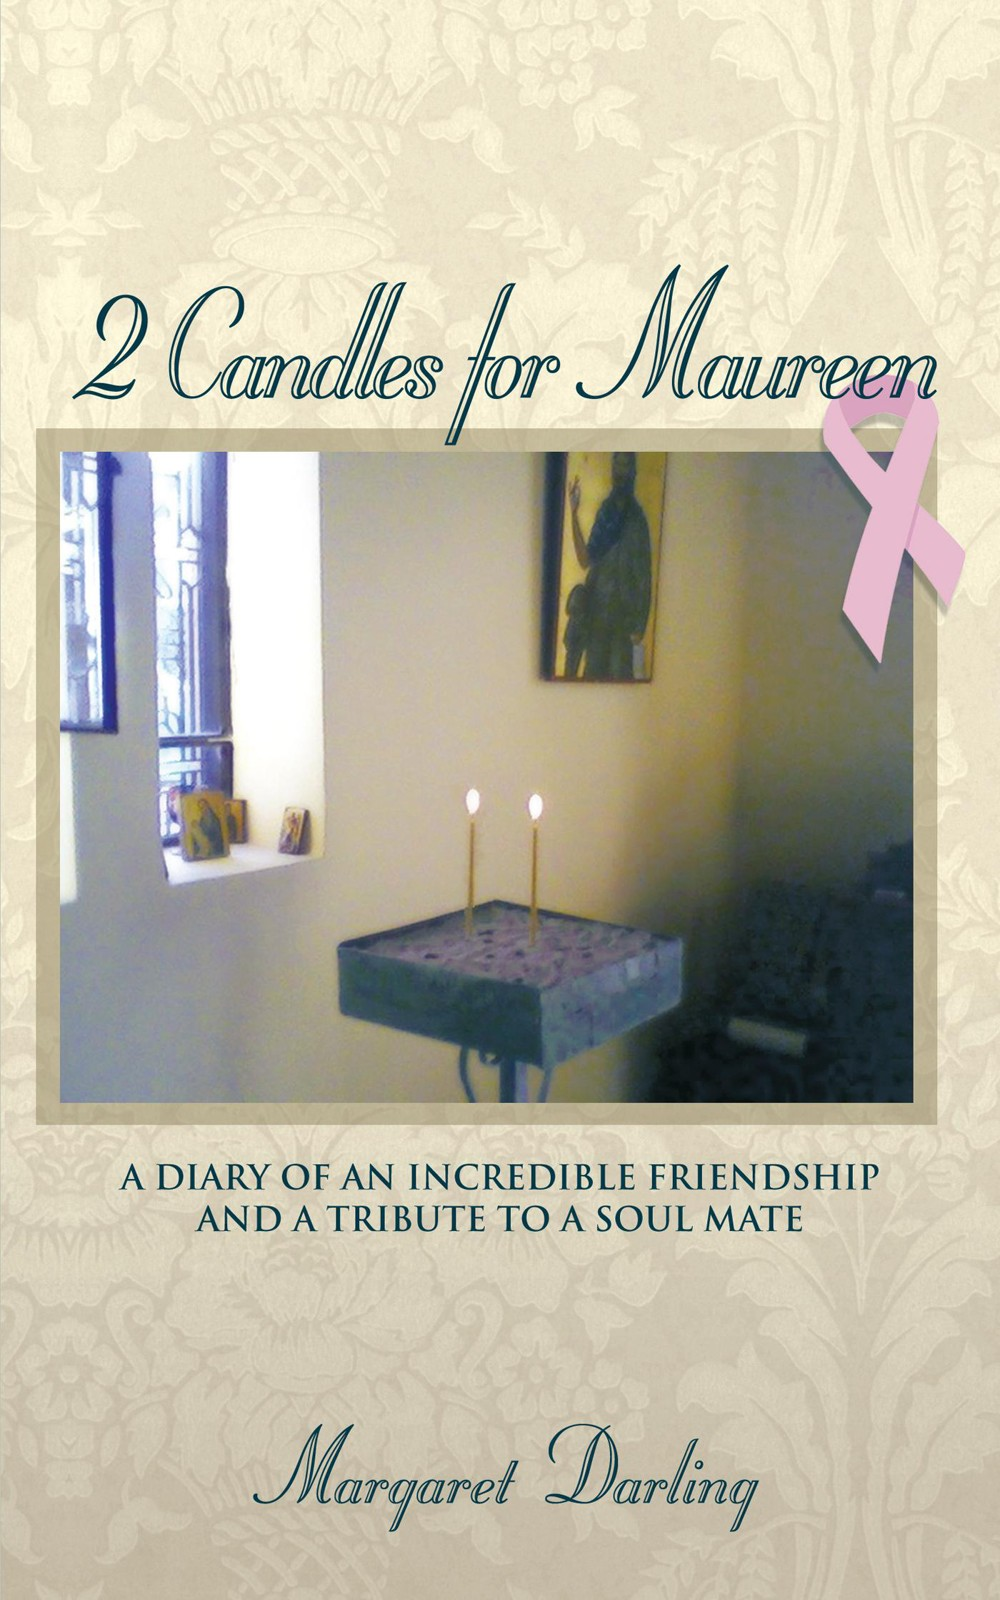 2 Candles for Maureen